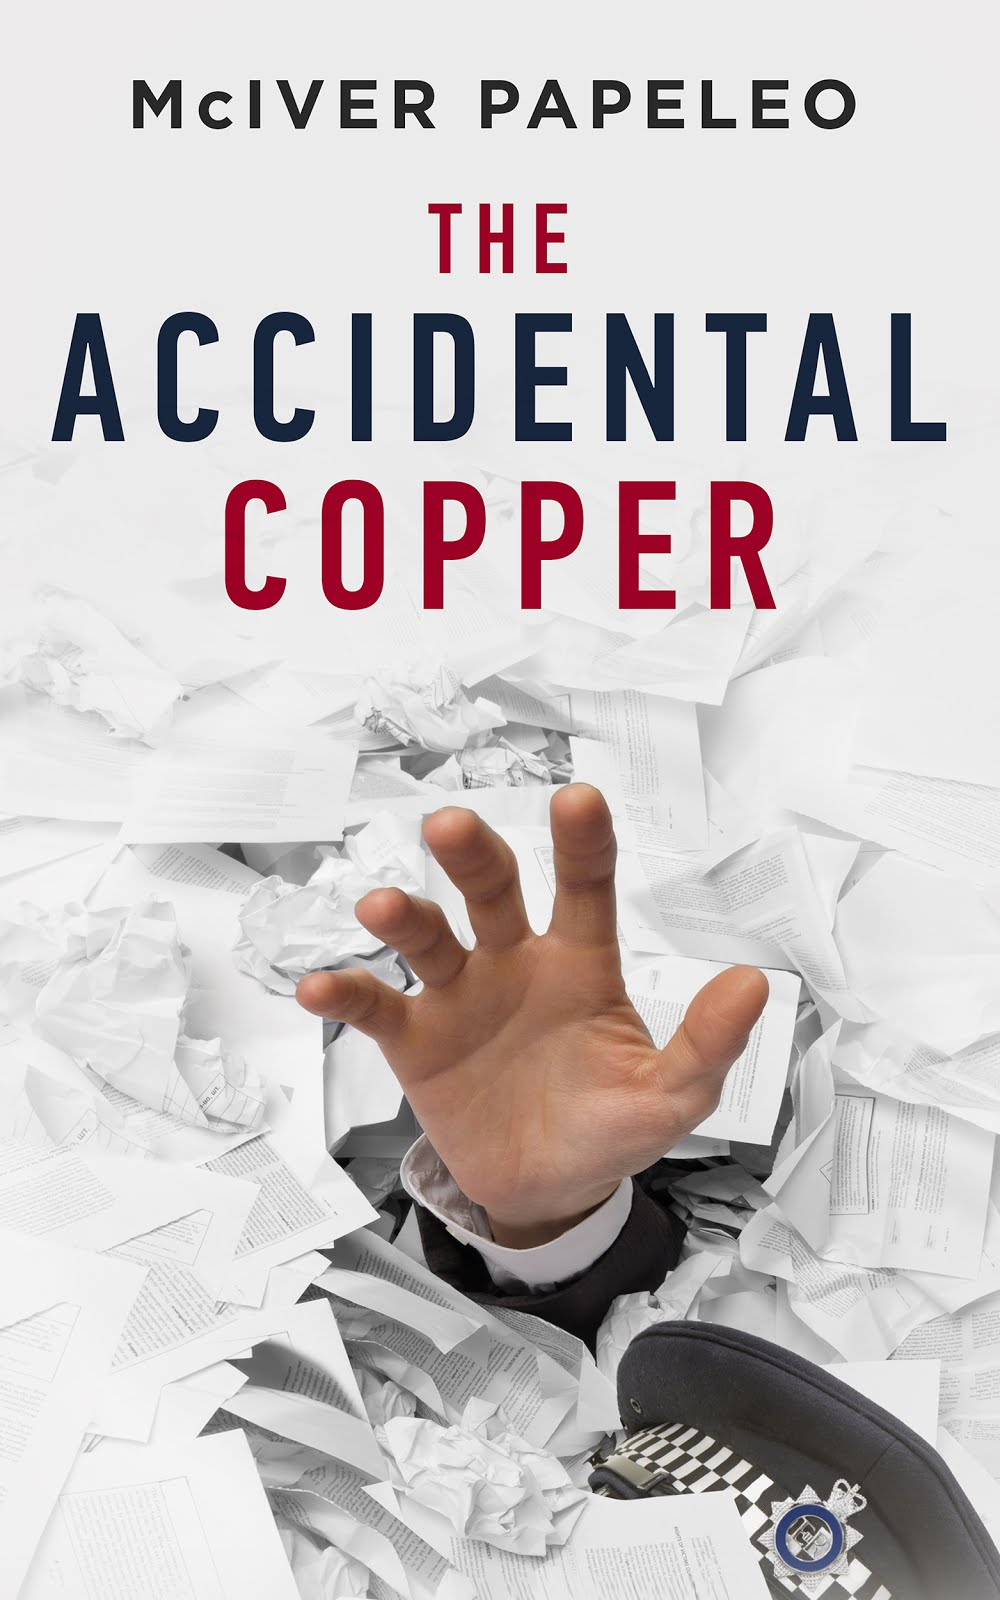 Order 'The Accidental Copper':